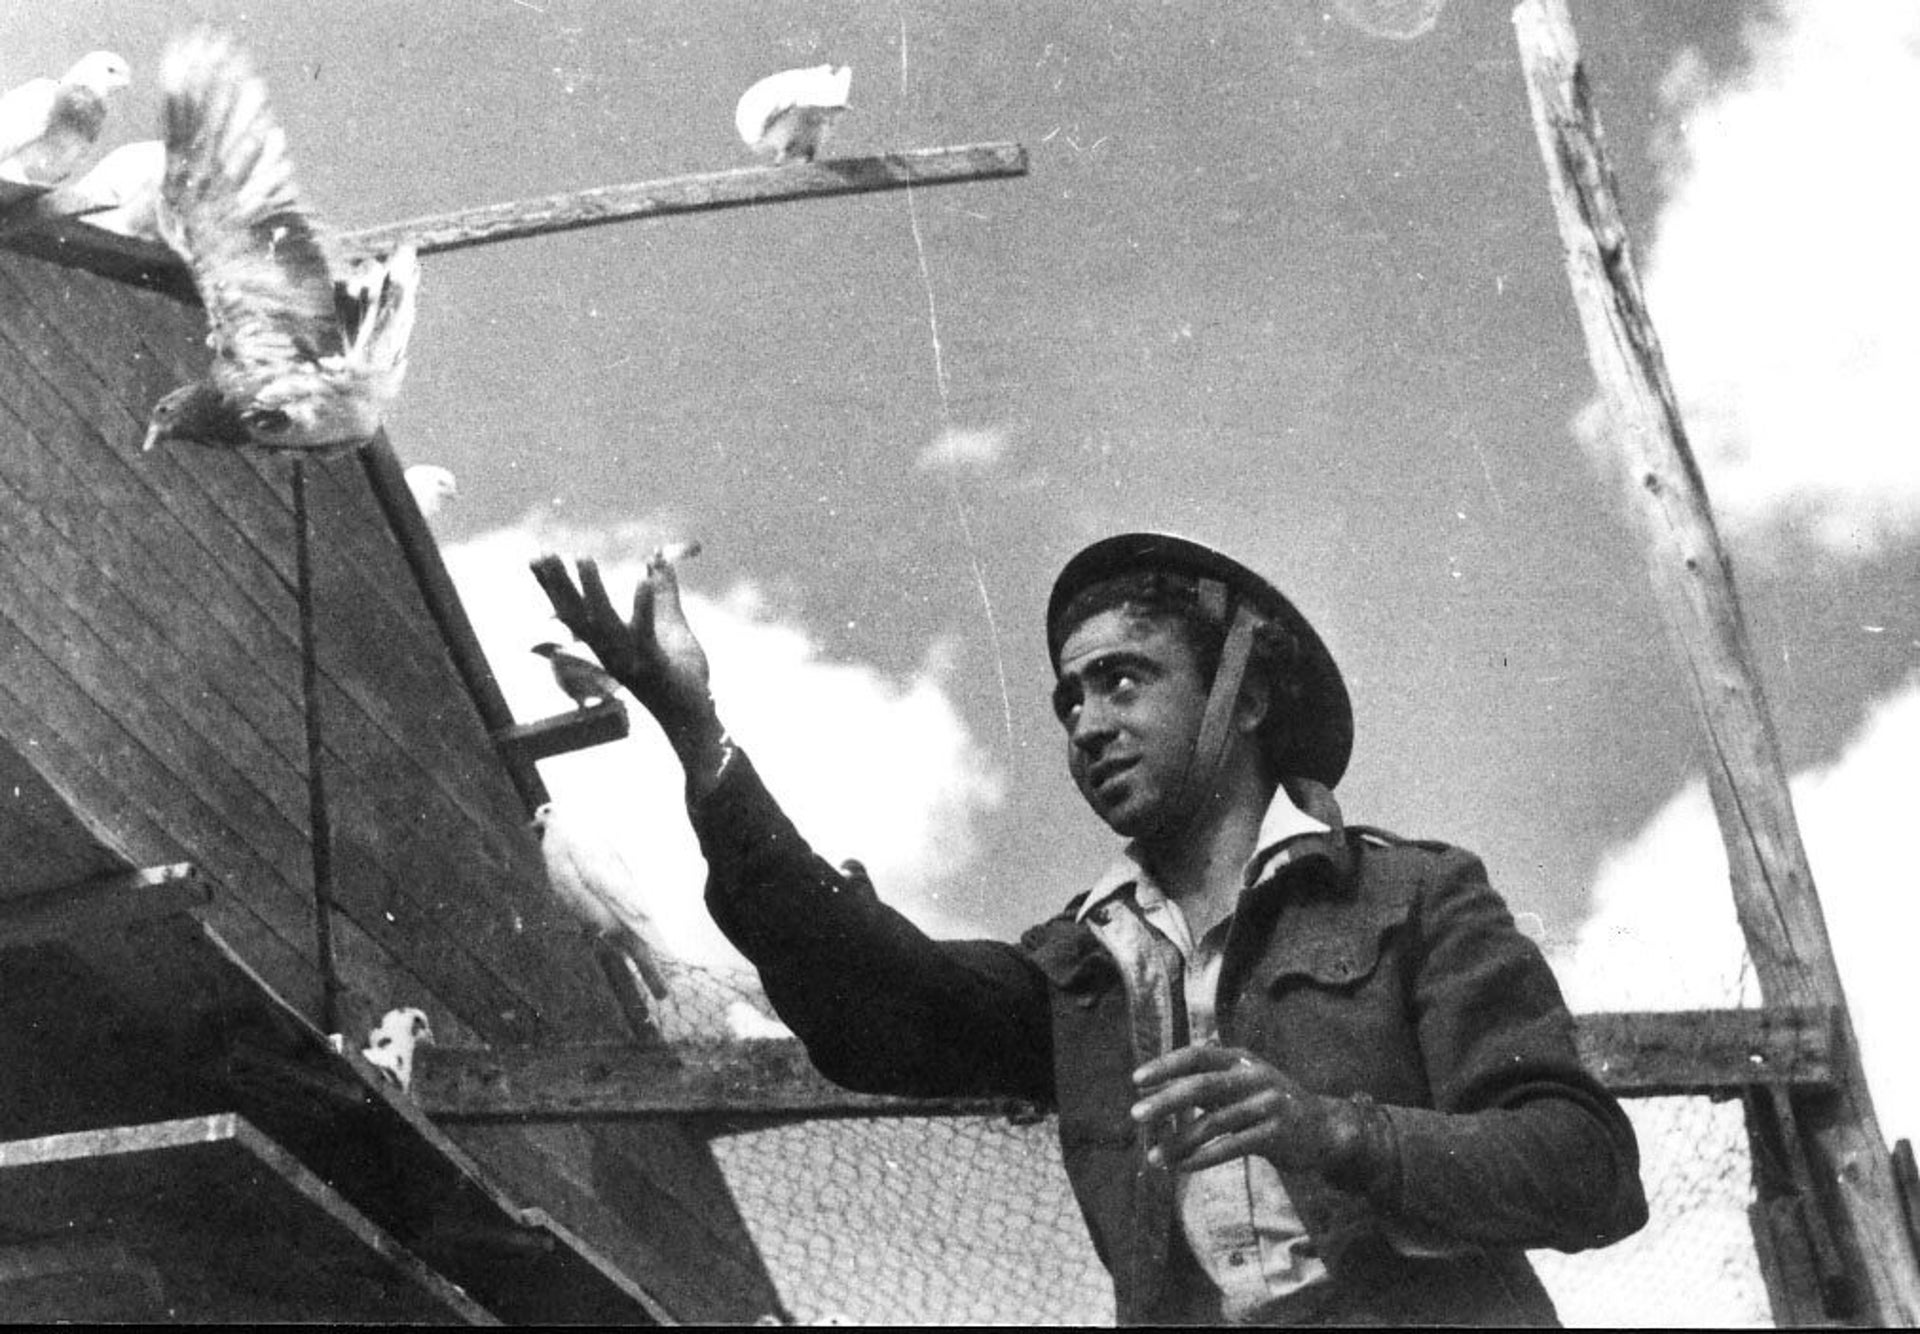 A soldier from the Signal Corps trains a messenger pigeon, 1949.